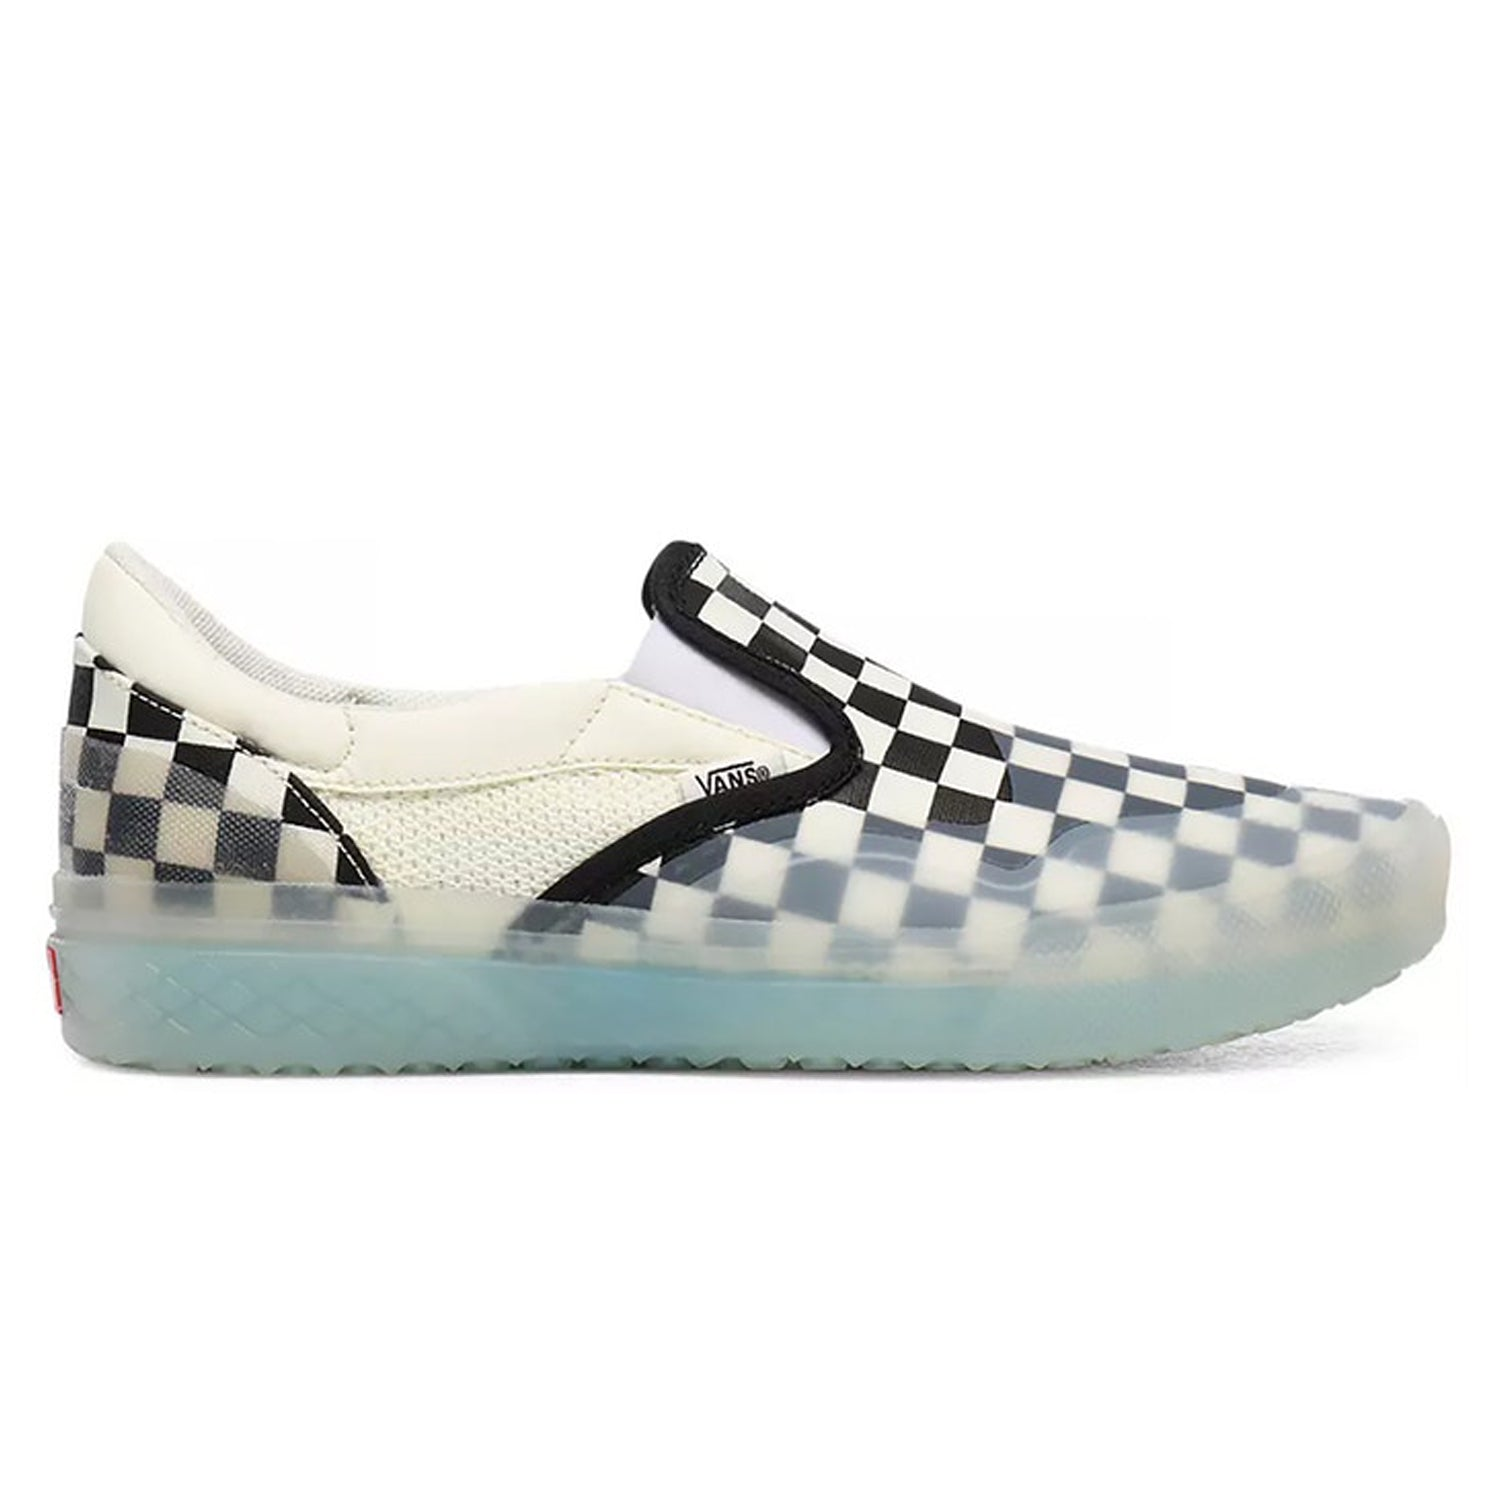 Vans Mod Slip-On Checkerboard